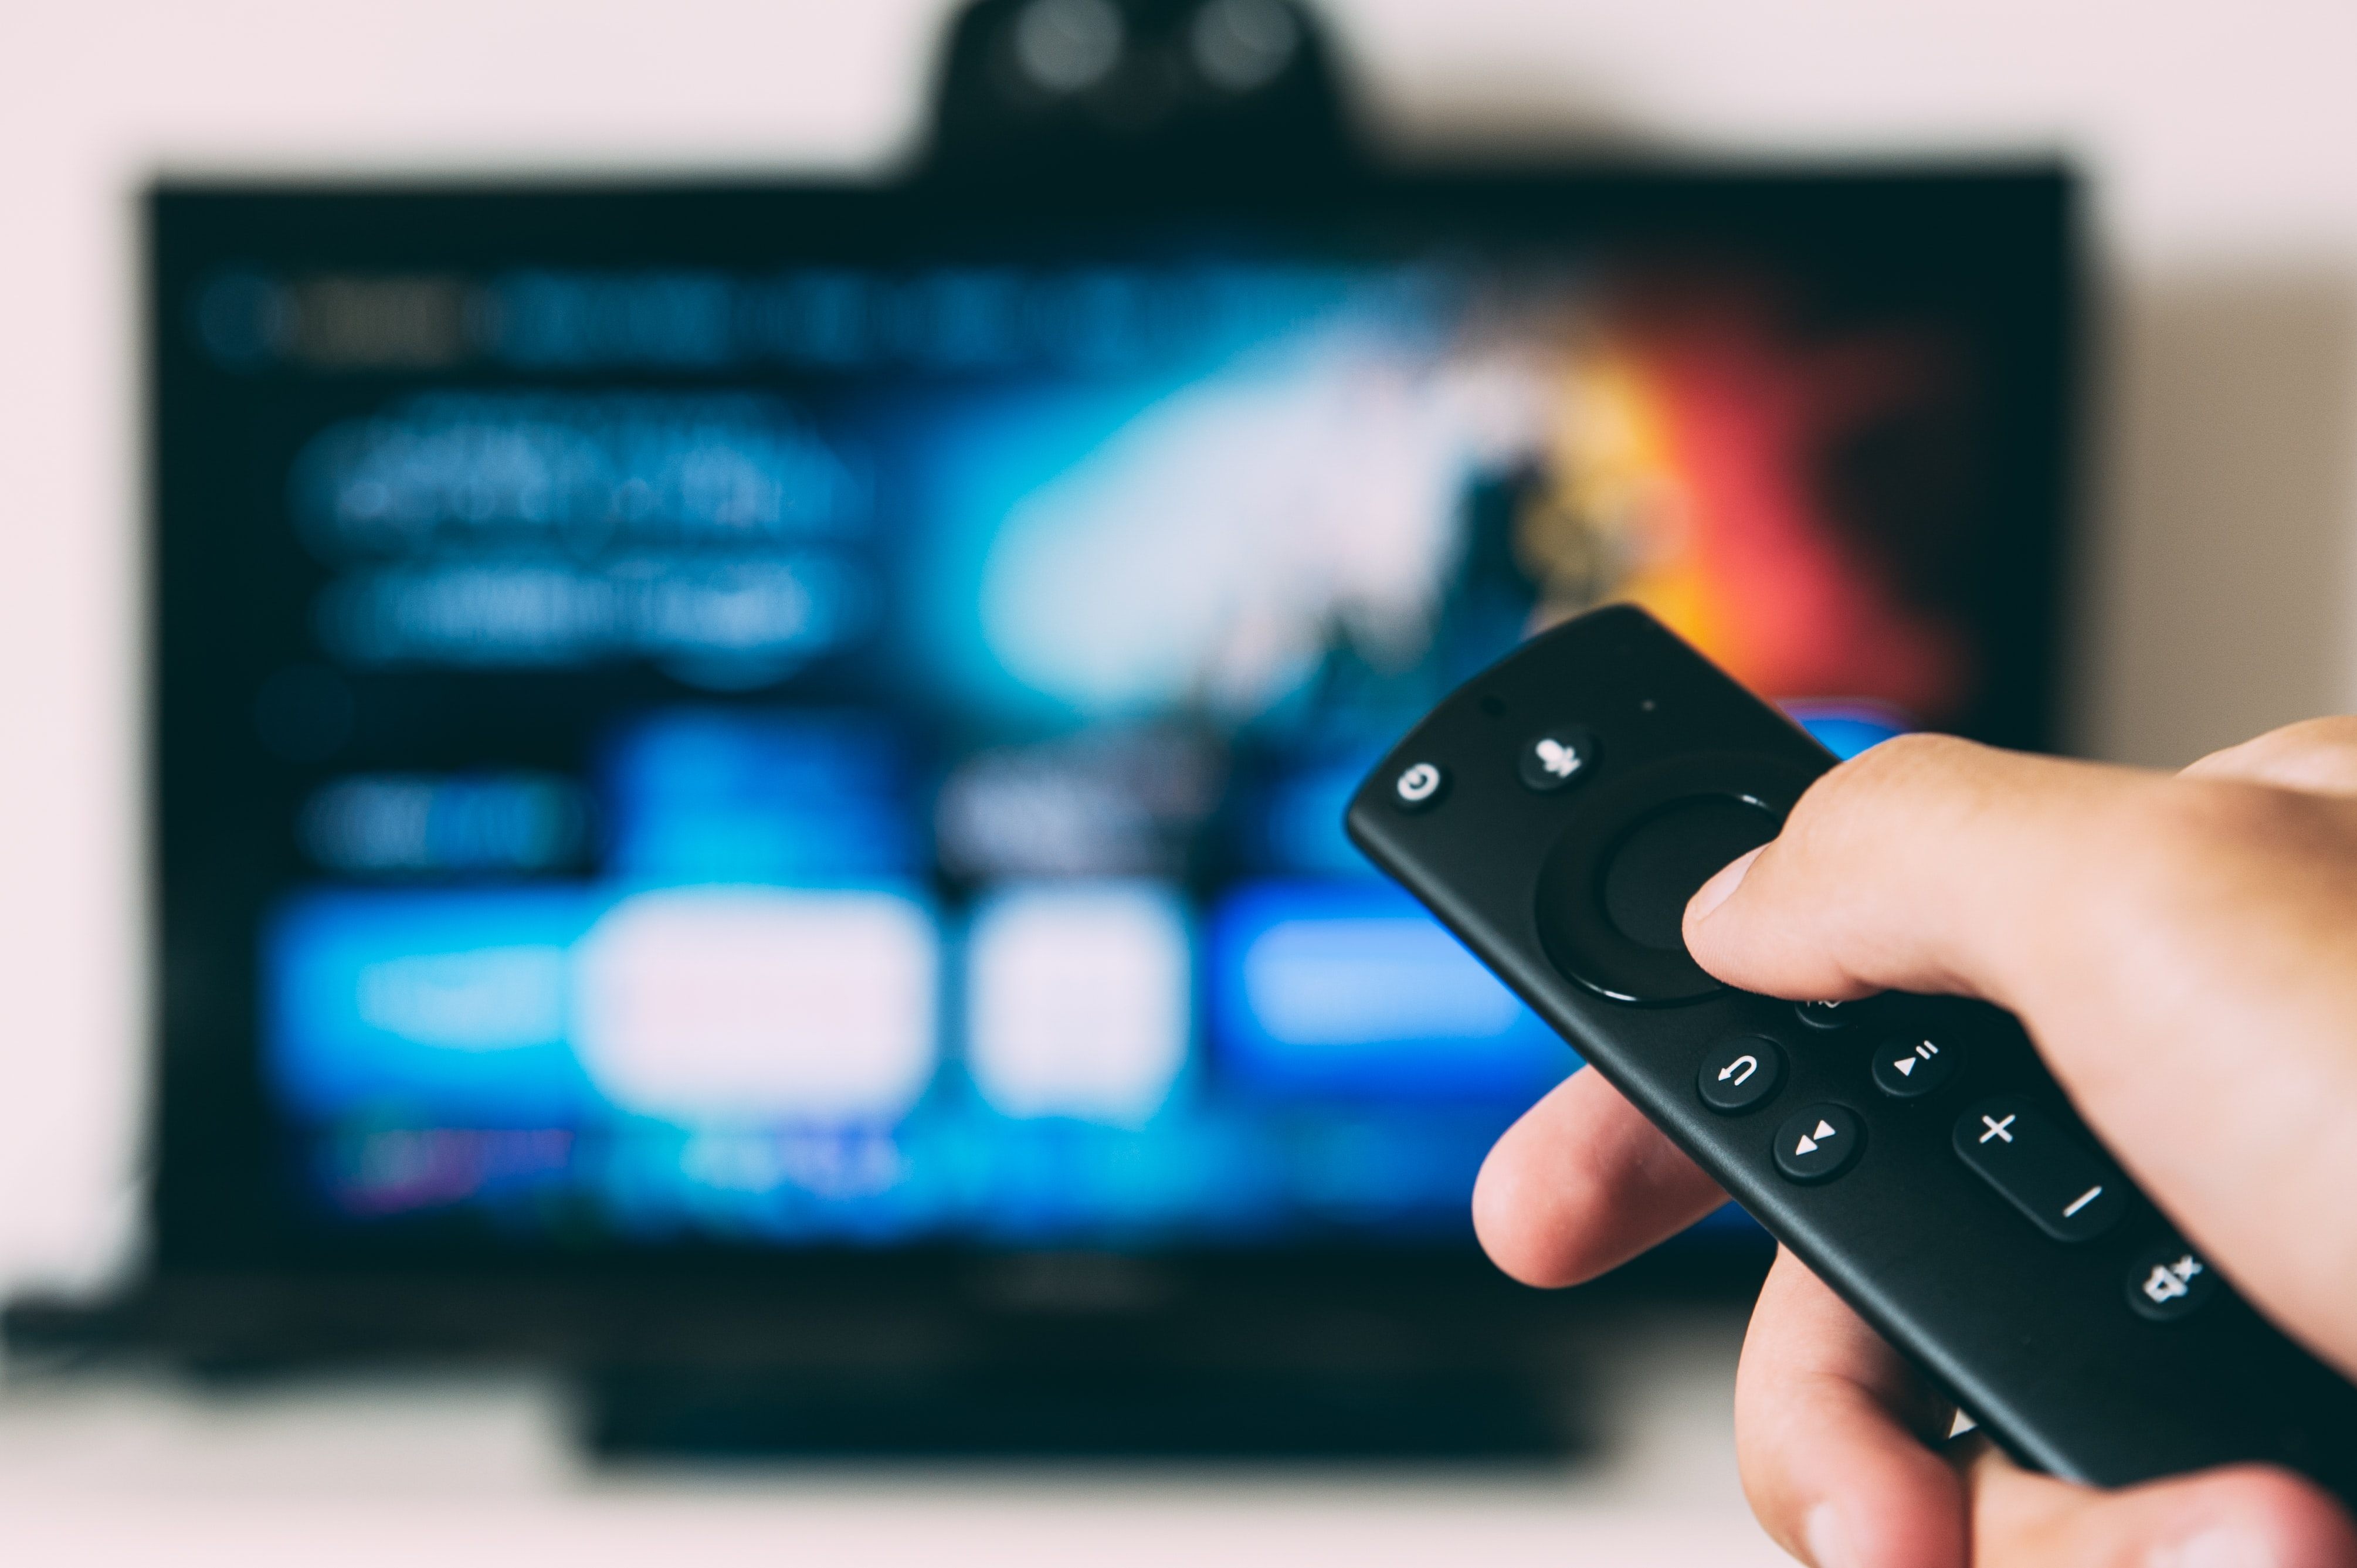 The video-on-demand market